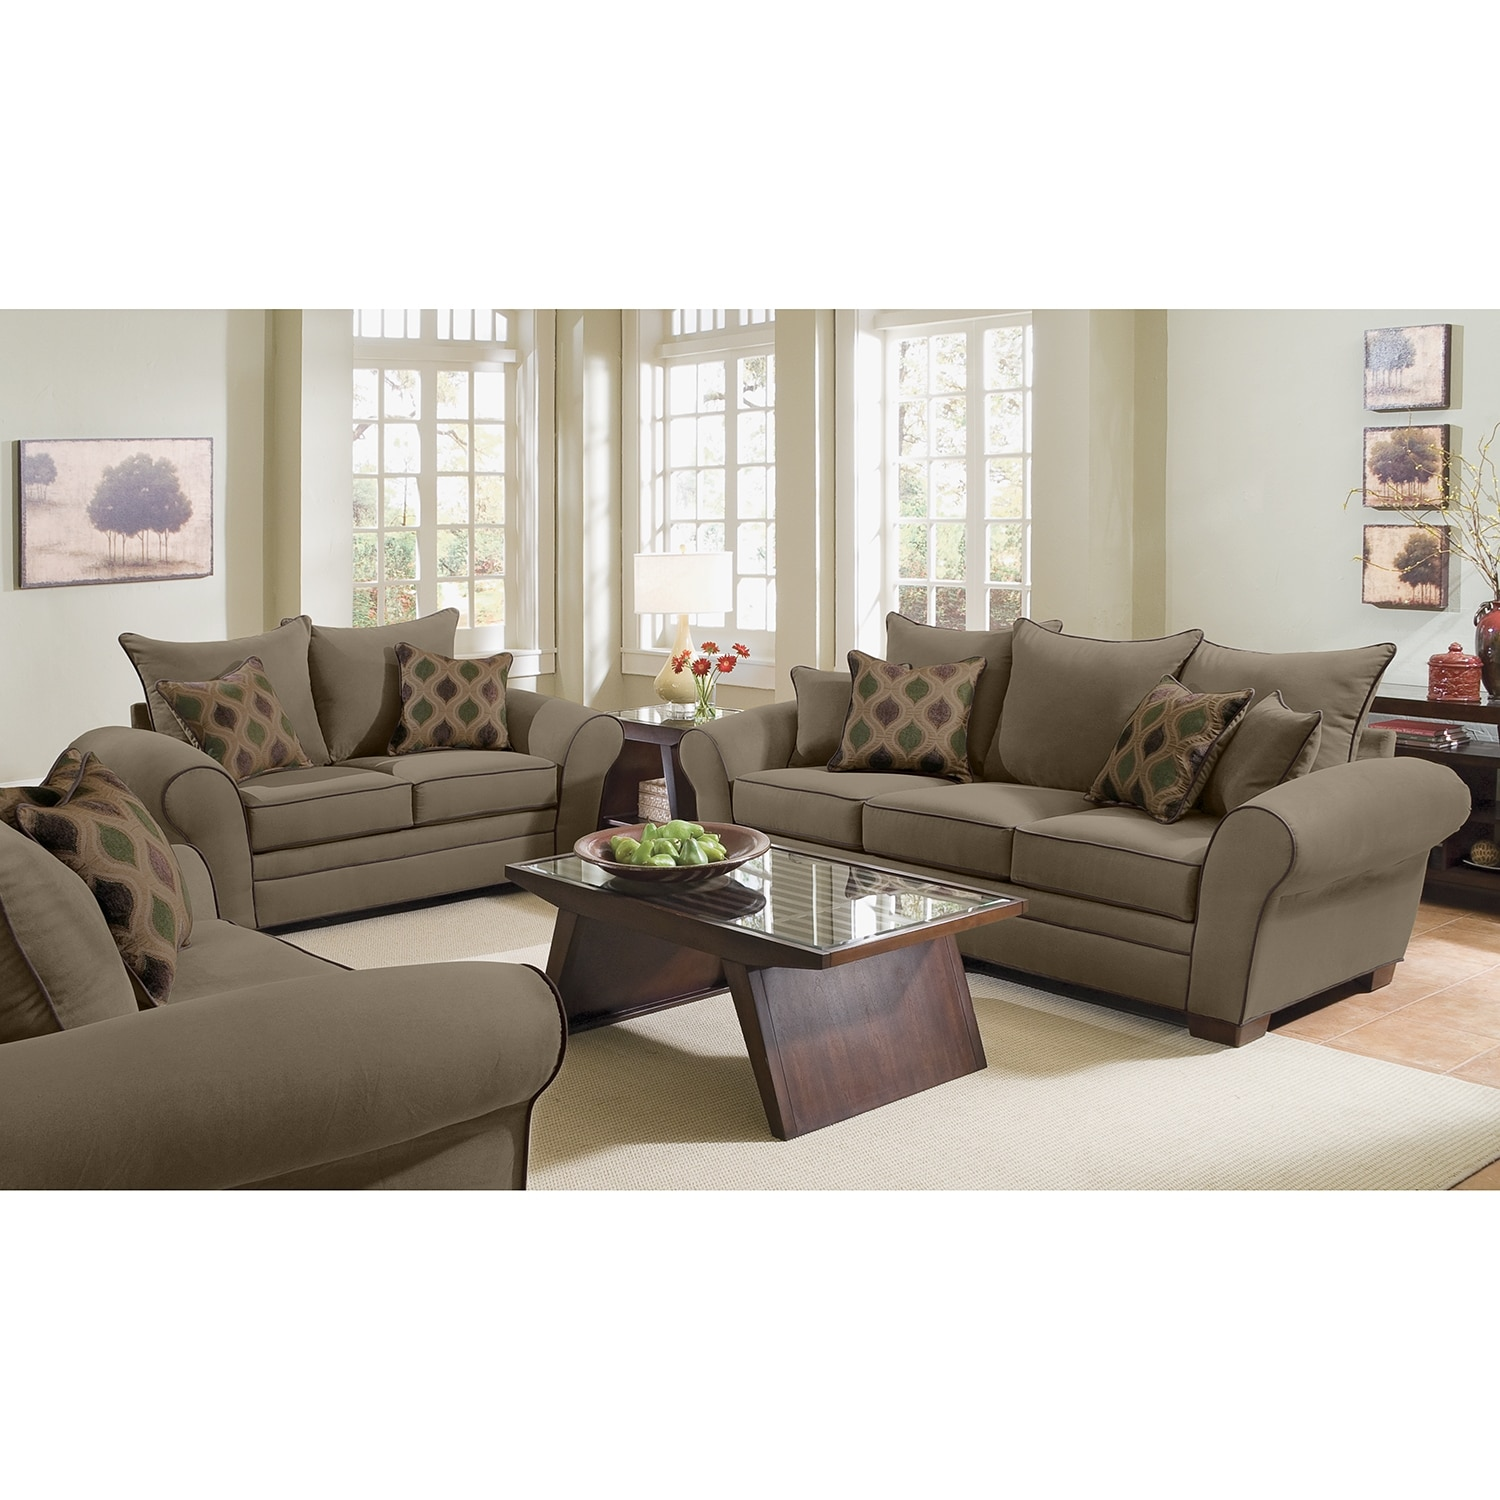 Rendezvous sofa and loveseat set olive value city for Living room furniture design